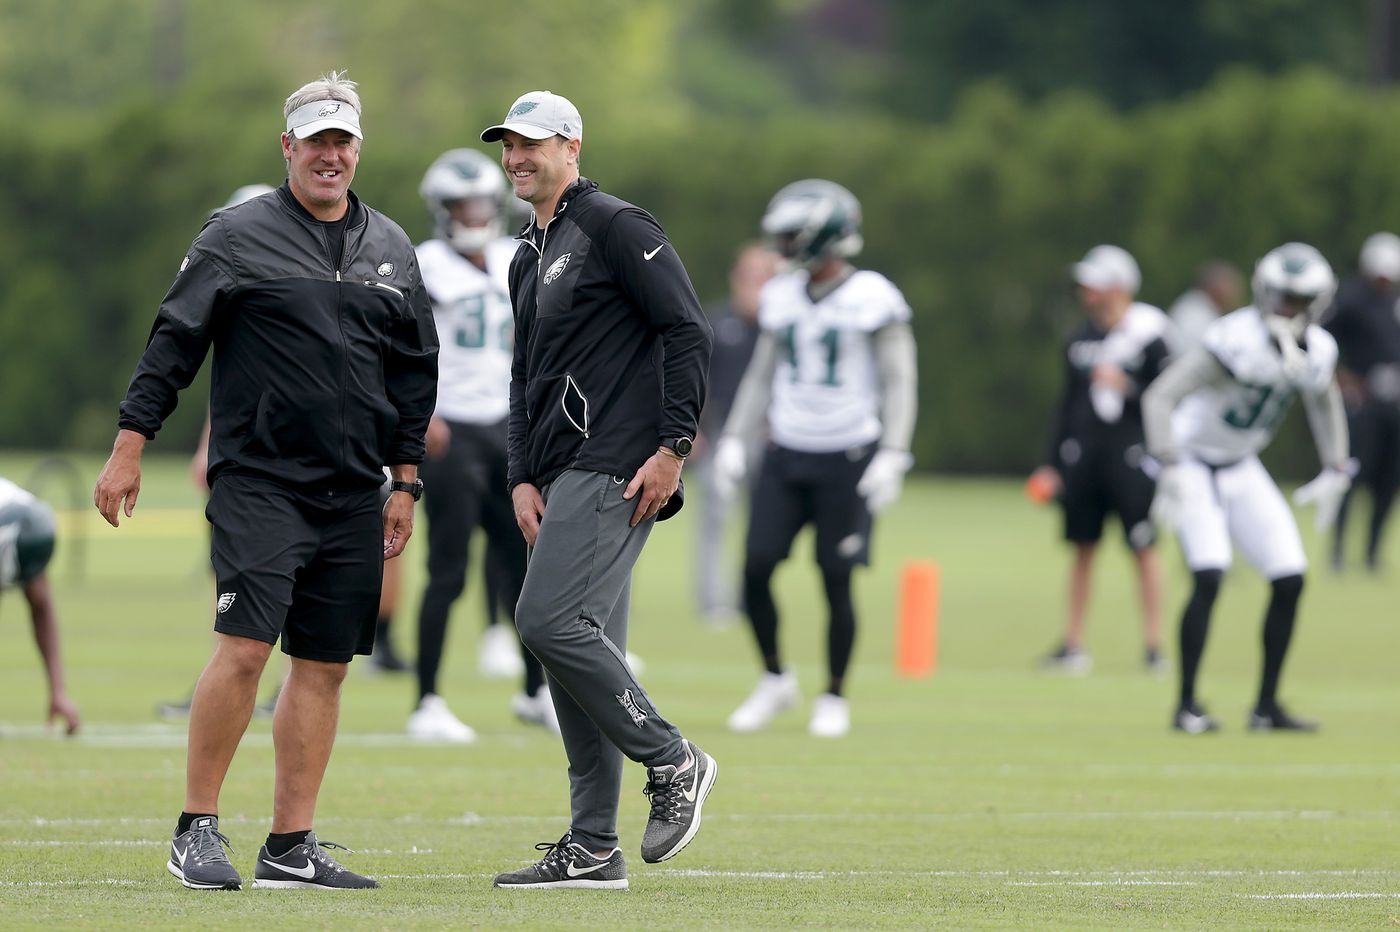 The Eagles' lack of scoring, confidence in Jake Elliott, and scouting the Jaguars | Early Birds